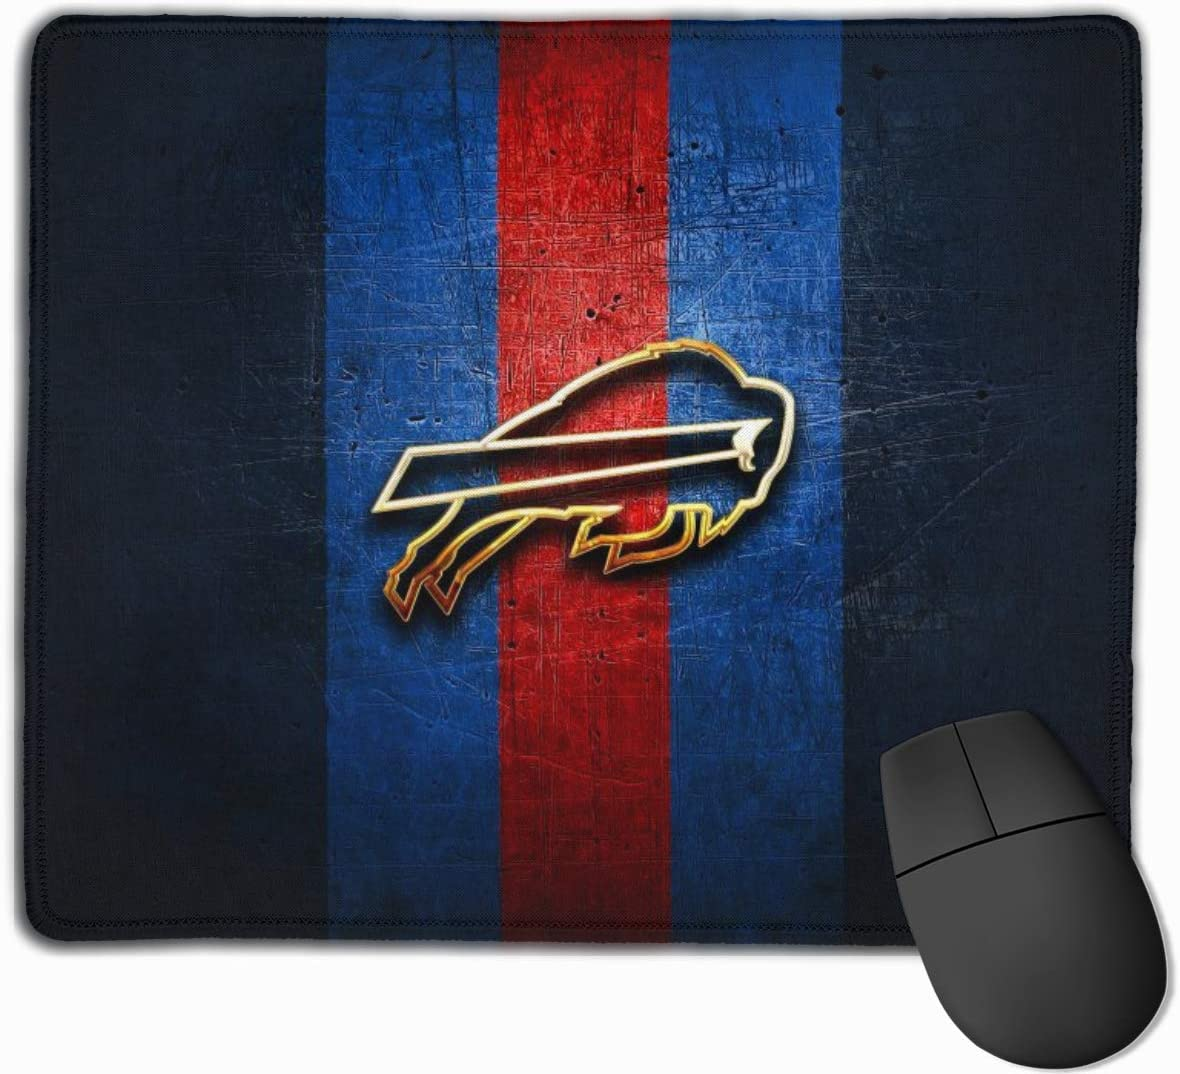 9.8 Inches X 11.8 Inches Kanteband Buffalo Bills Non-Slip Rubber Mouse Pad Football Fan Mouse Pad